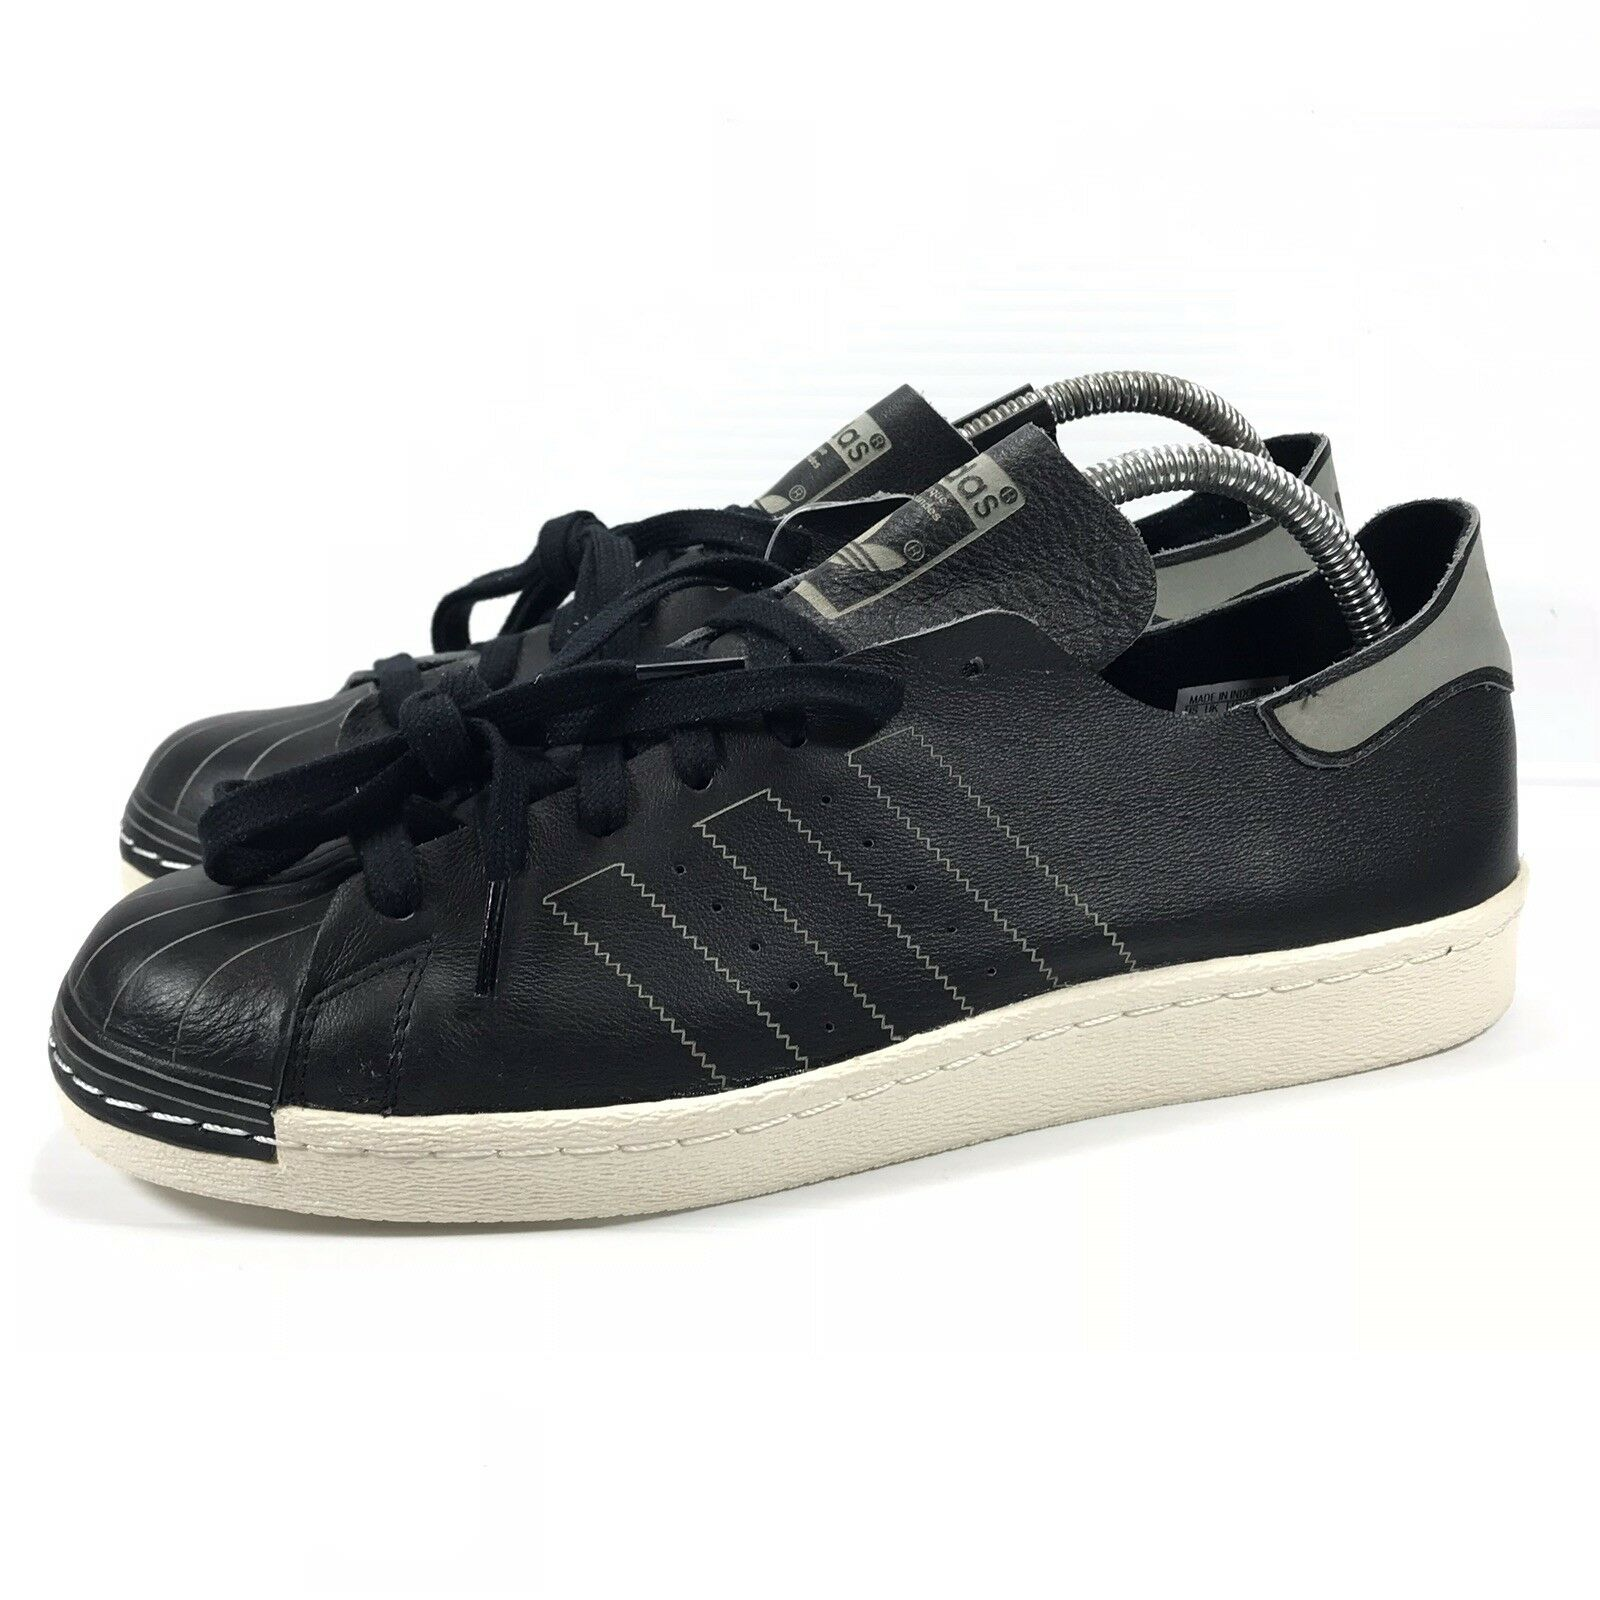 Adidas Superstar 80s Decon Sneakers Mens Sz 10 BZ0110 Leather